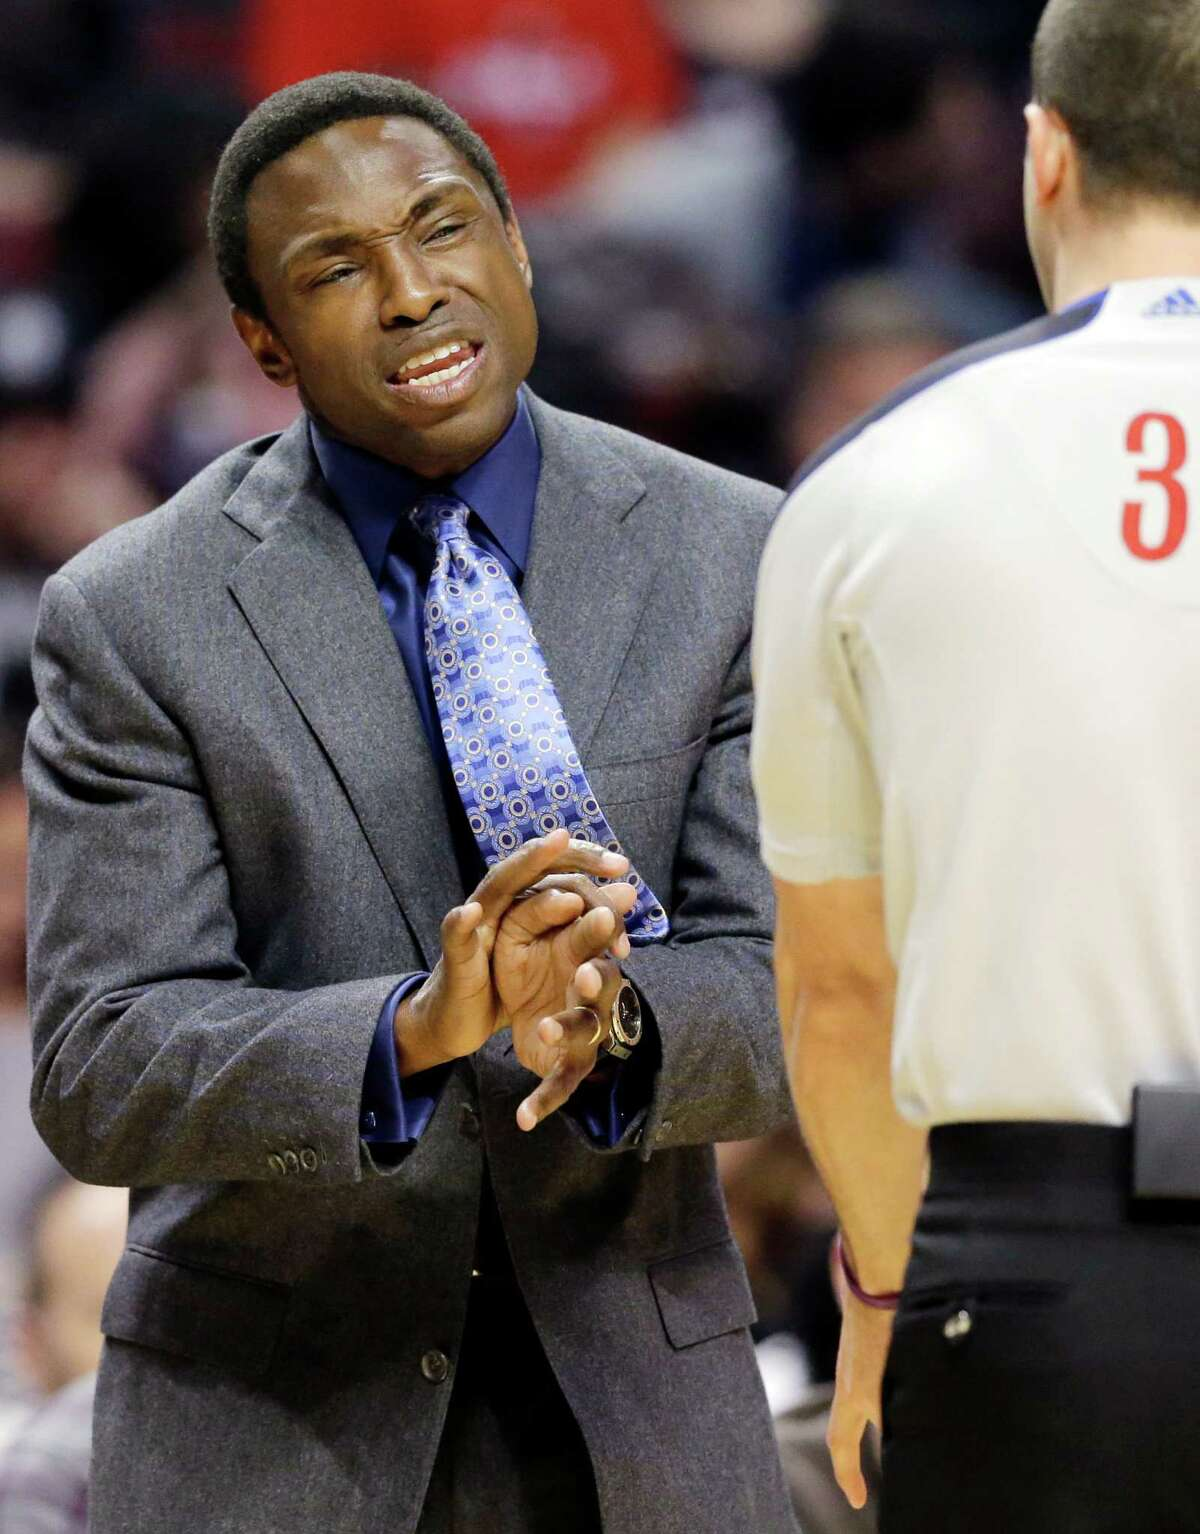 FILE - In this Dec. 15, 2012, file photo, Brooklyn Nets head coach Avery Johnson, left, reacts to a call during the first half of an NBA basketball game against the Chicago Bulls in Chicago. Johnson was fired on Thursday, Dec. 27, 2012, general manager Billy King announced. (AP Photo/Nam Y. Huh, File)